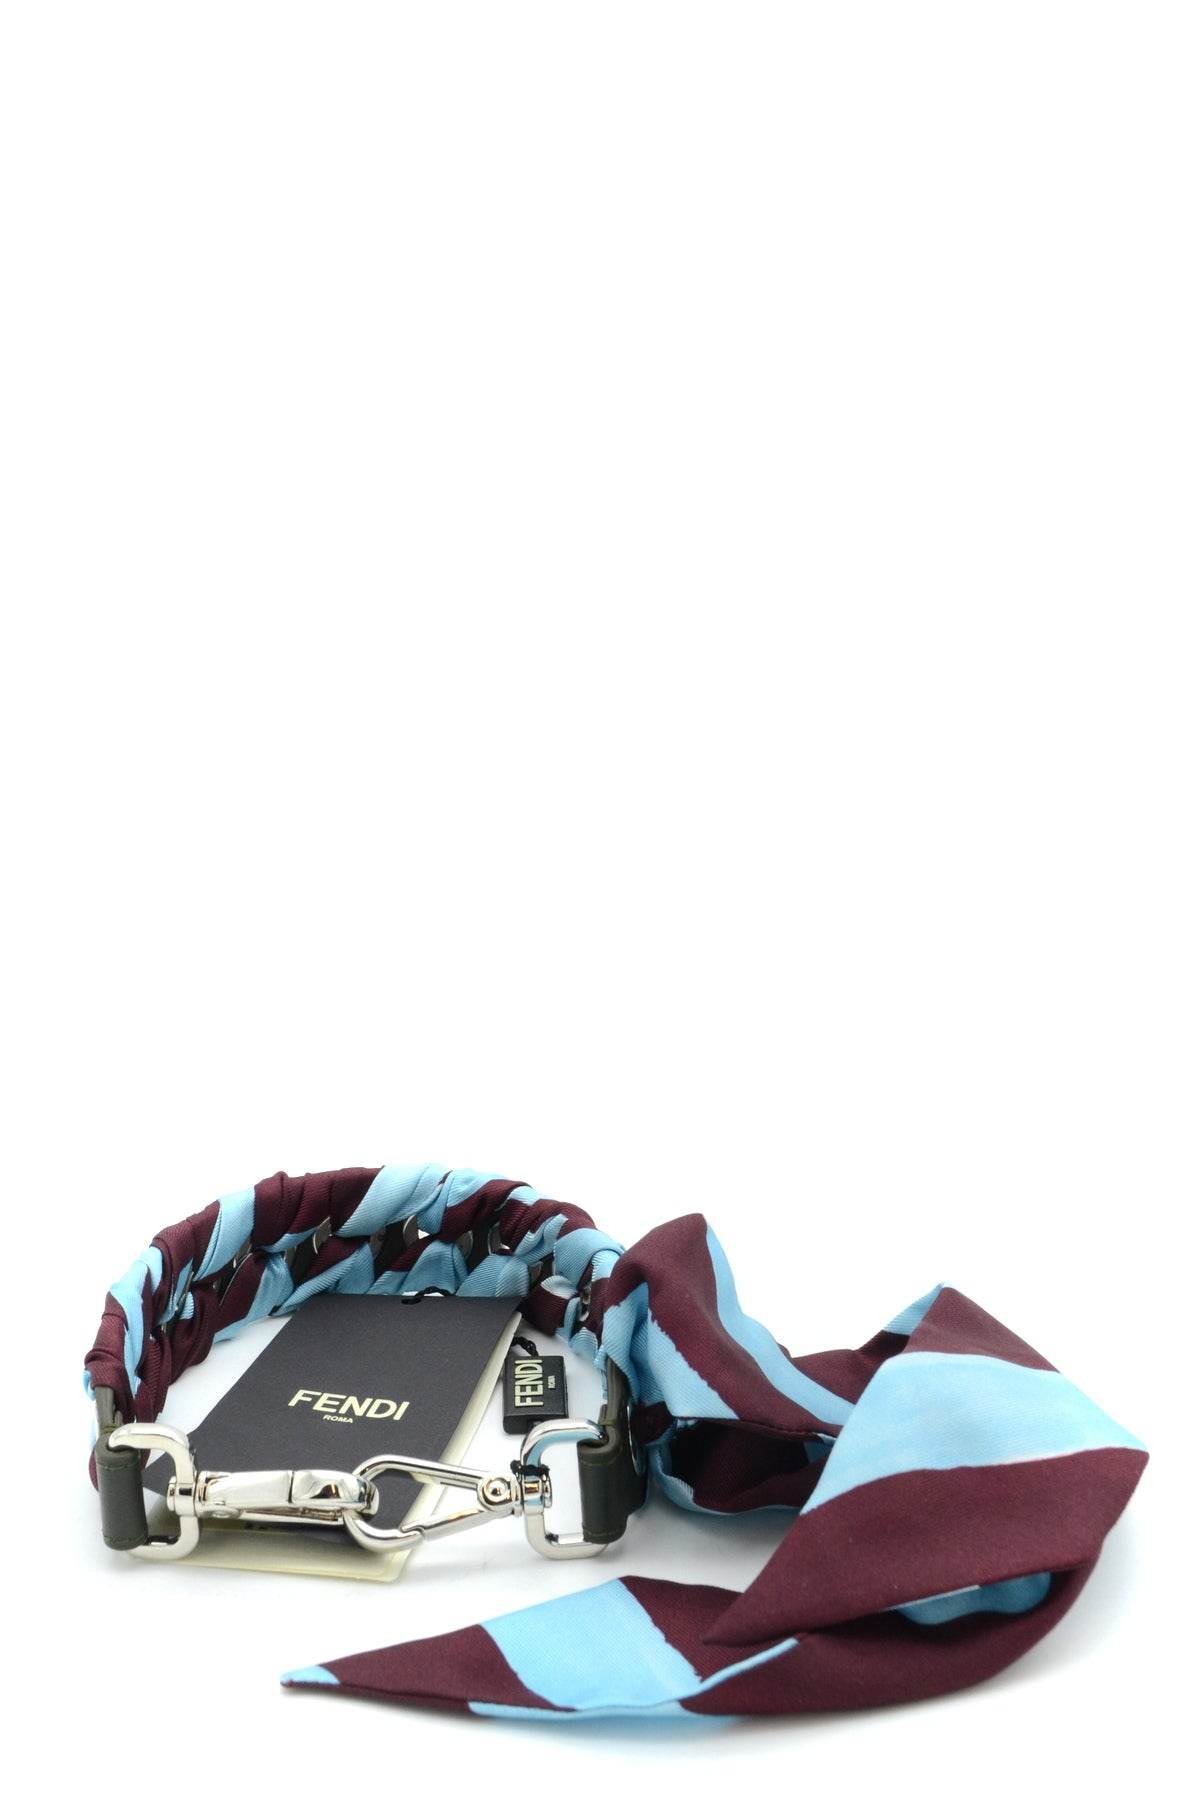 Bag Fendi-Bags - WOMAN-Product Details Type Of Accessory: TracollaSeason: Spring / SummerTerms: New With LabelMain Color: MulticolorGender: WomanMade In: ItalyManufacturer Part Number: 8Av105/2Ilf02IxSize: IntYear: 2018Composition: Leather 100%-Keyomi-Sook